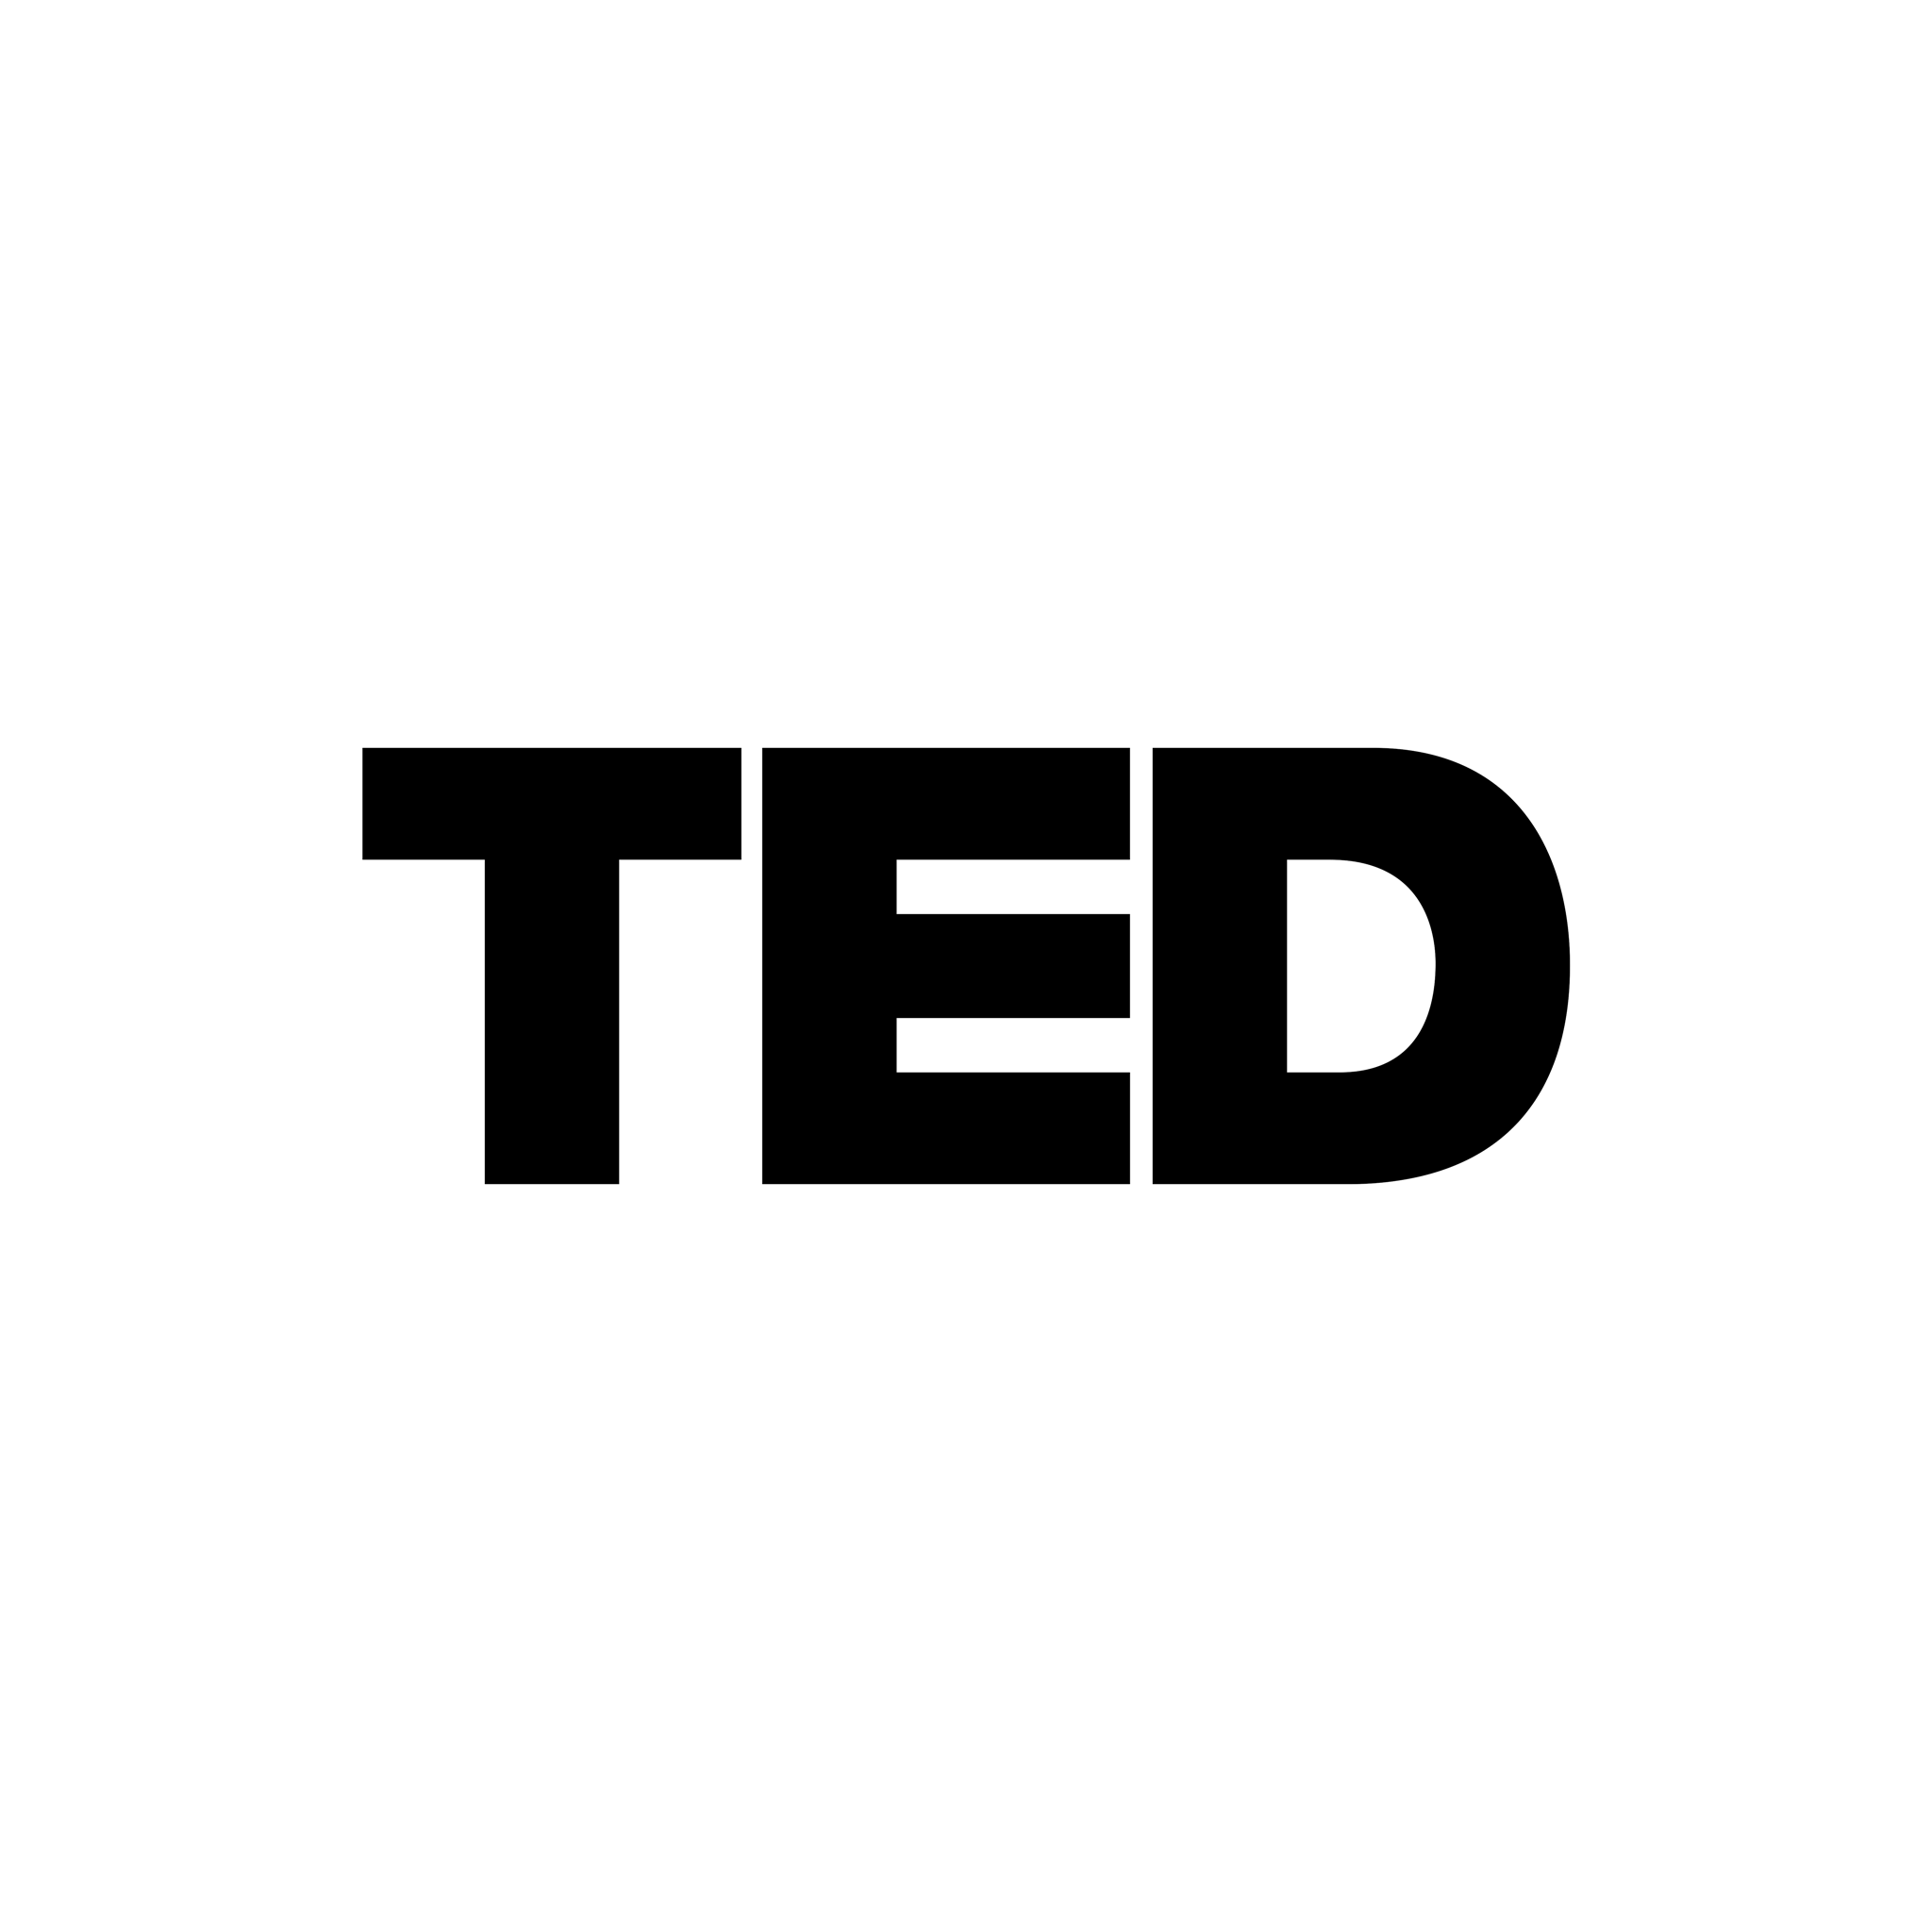 ted, black icon